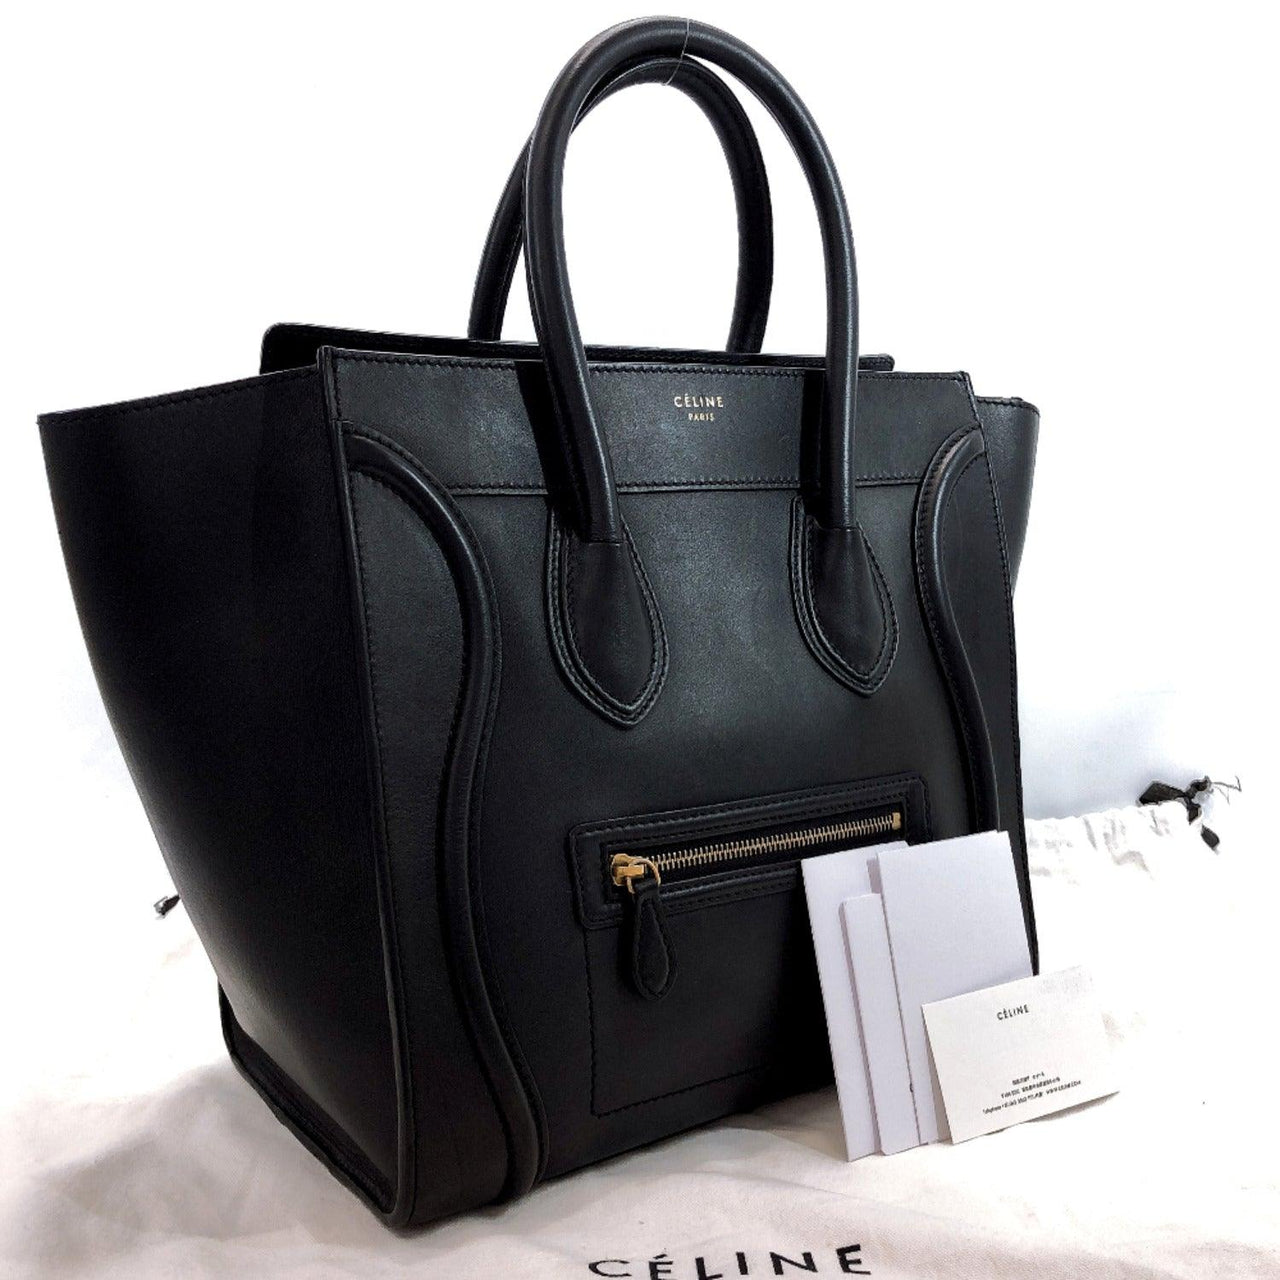 CELINE Handbag 165213HSC.38NO Mini shopper Luggage leather black Women Used